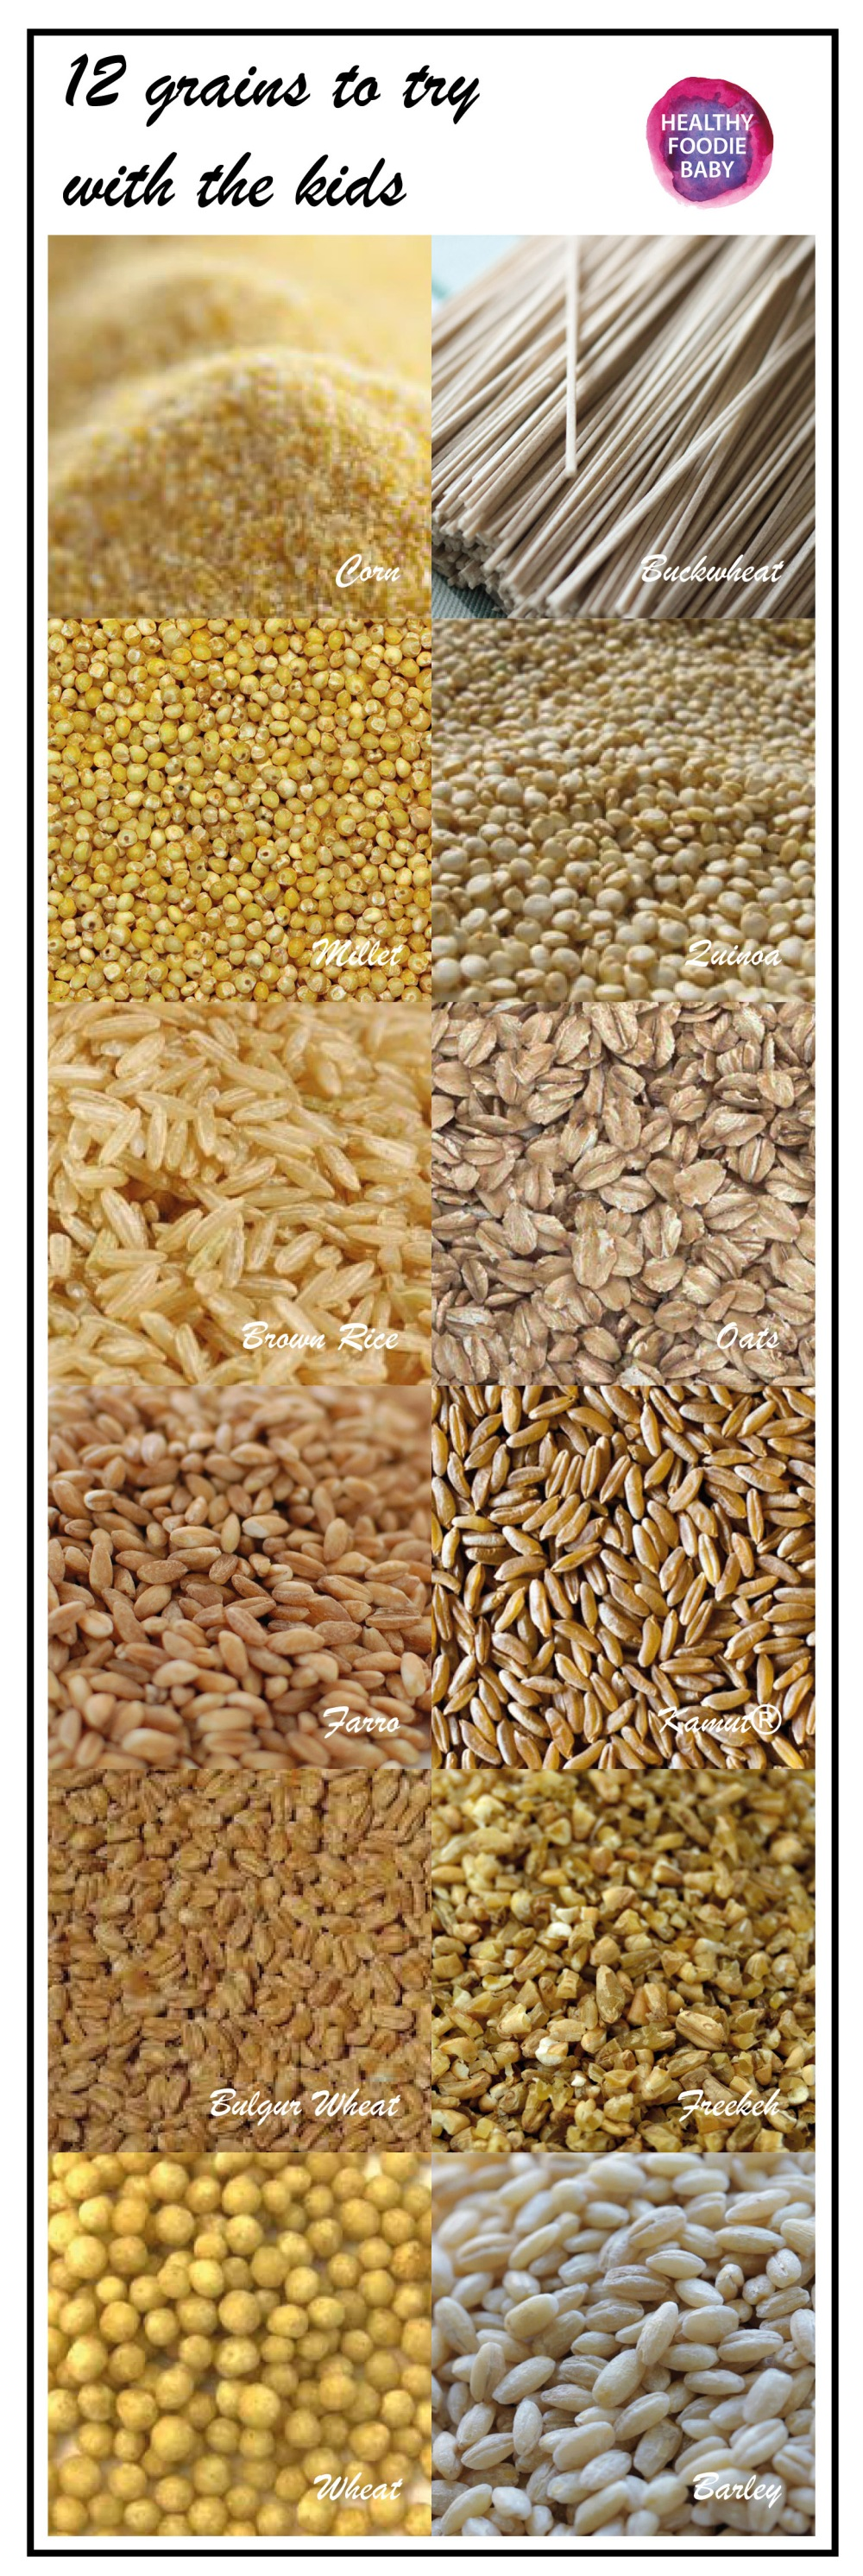 grains-to-try-with-kids